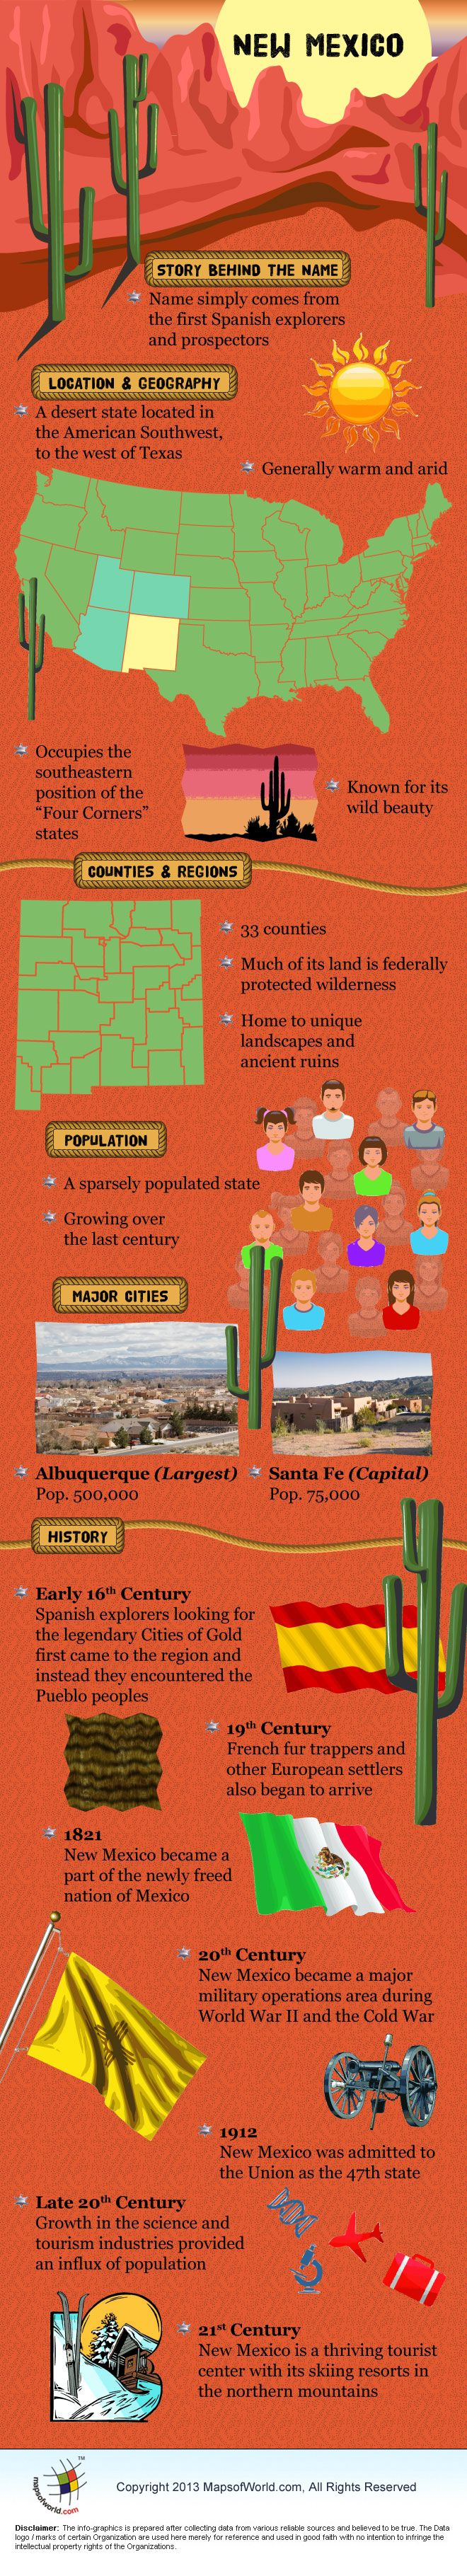 Infographic of New Mexico Facts